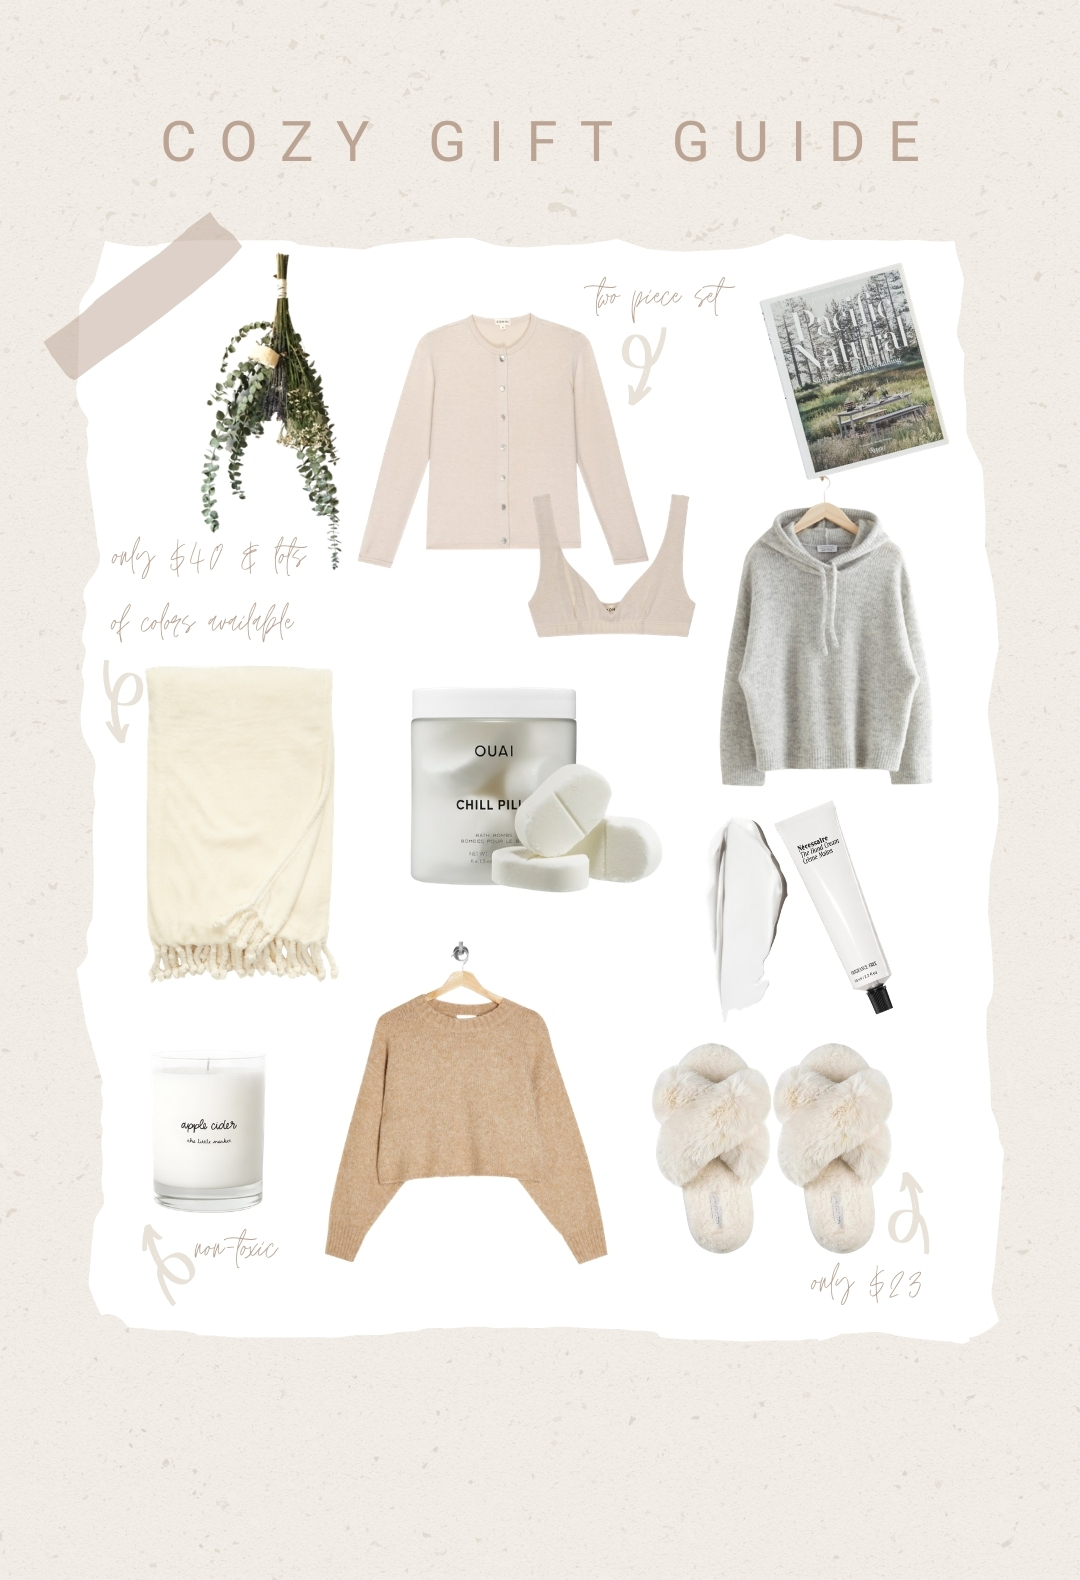 Cozy Gift Guide 2020